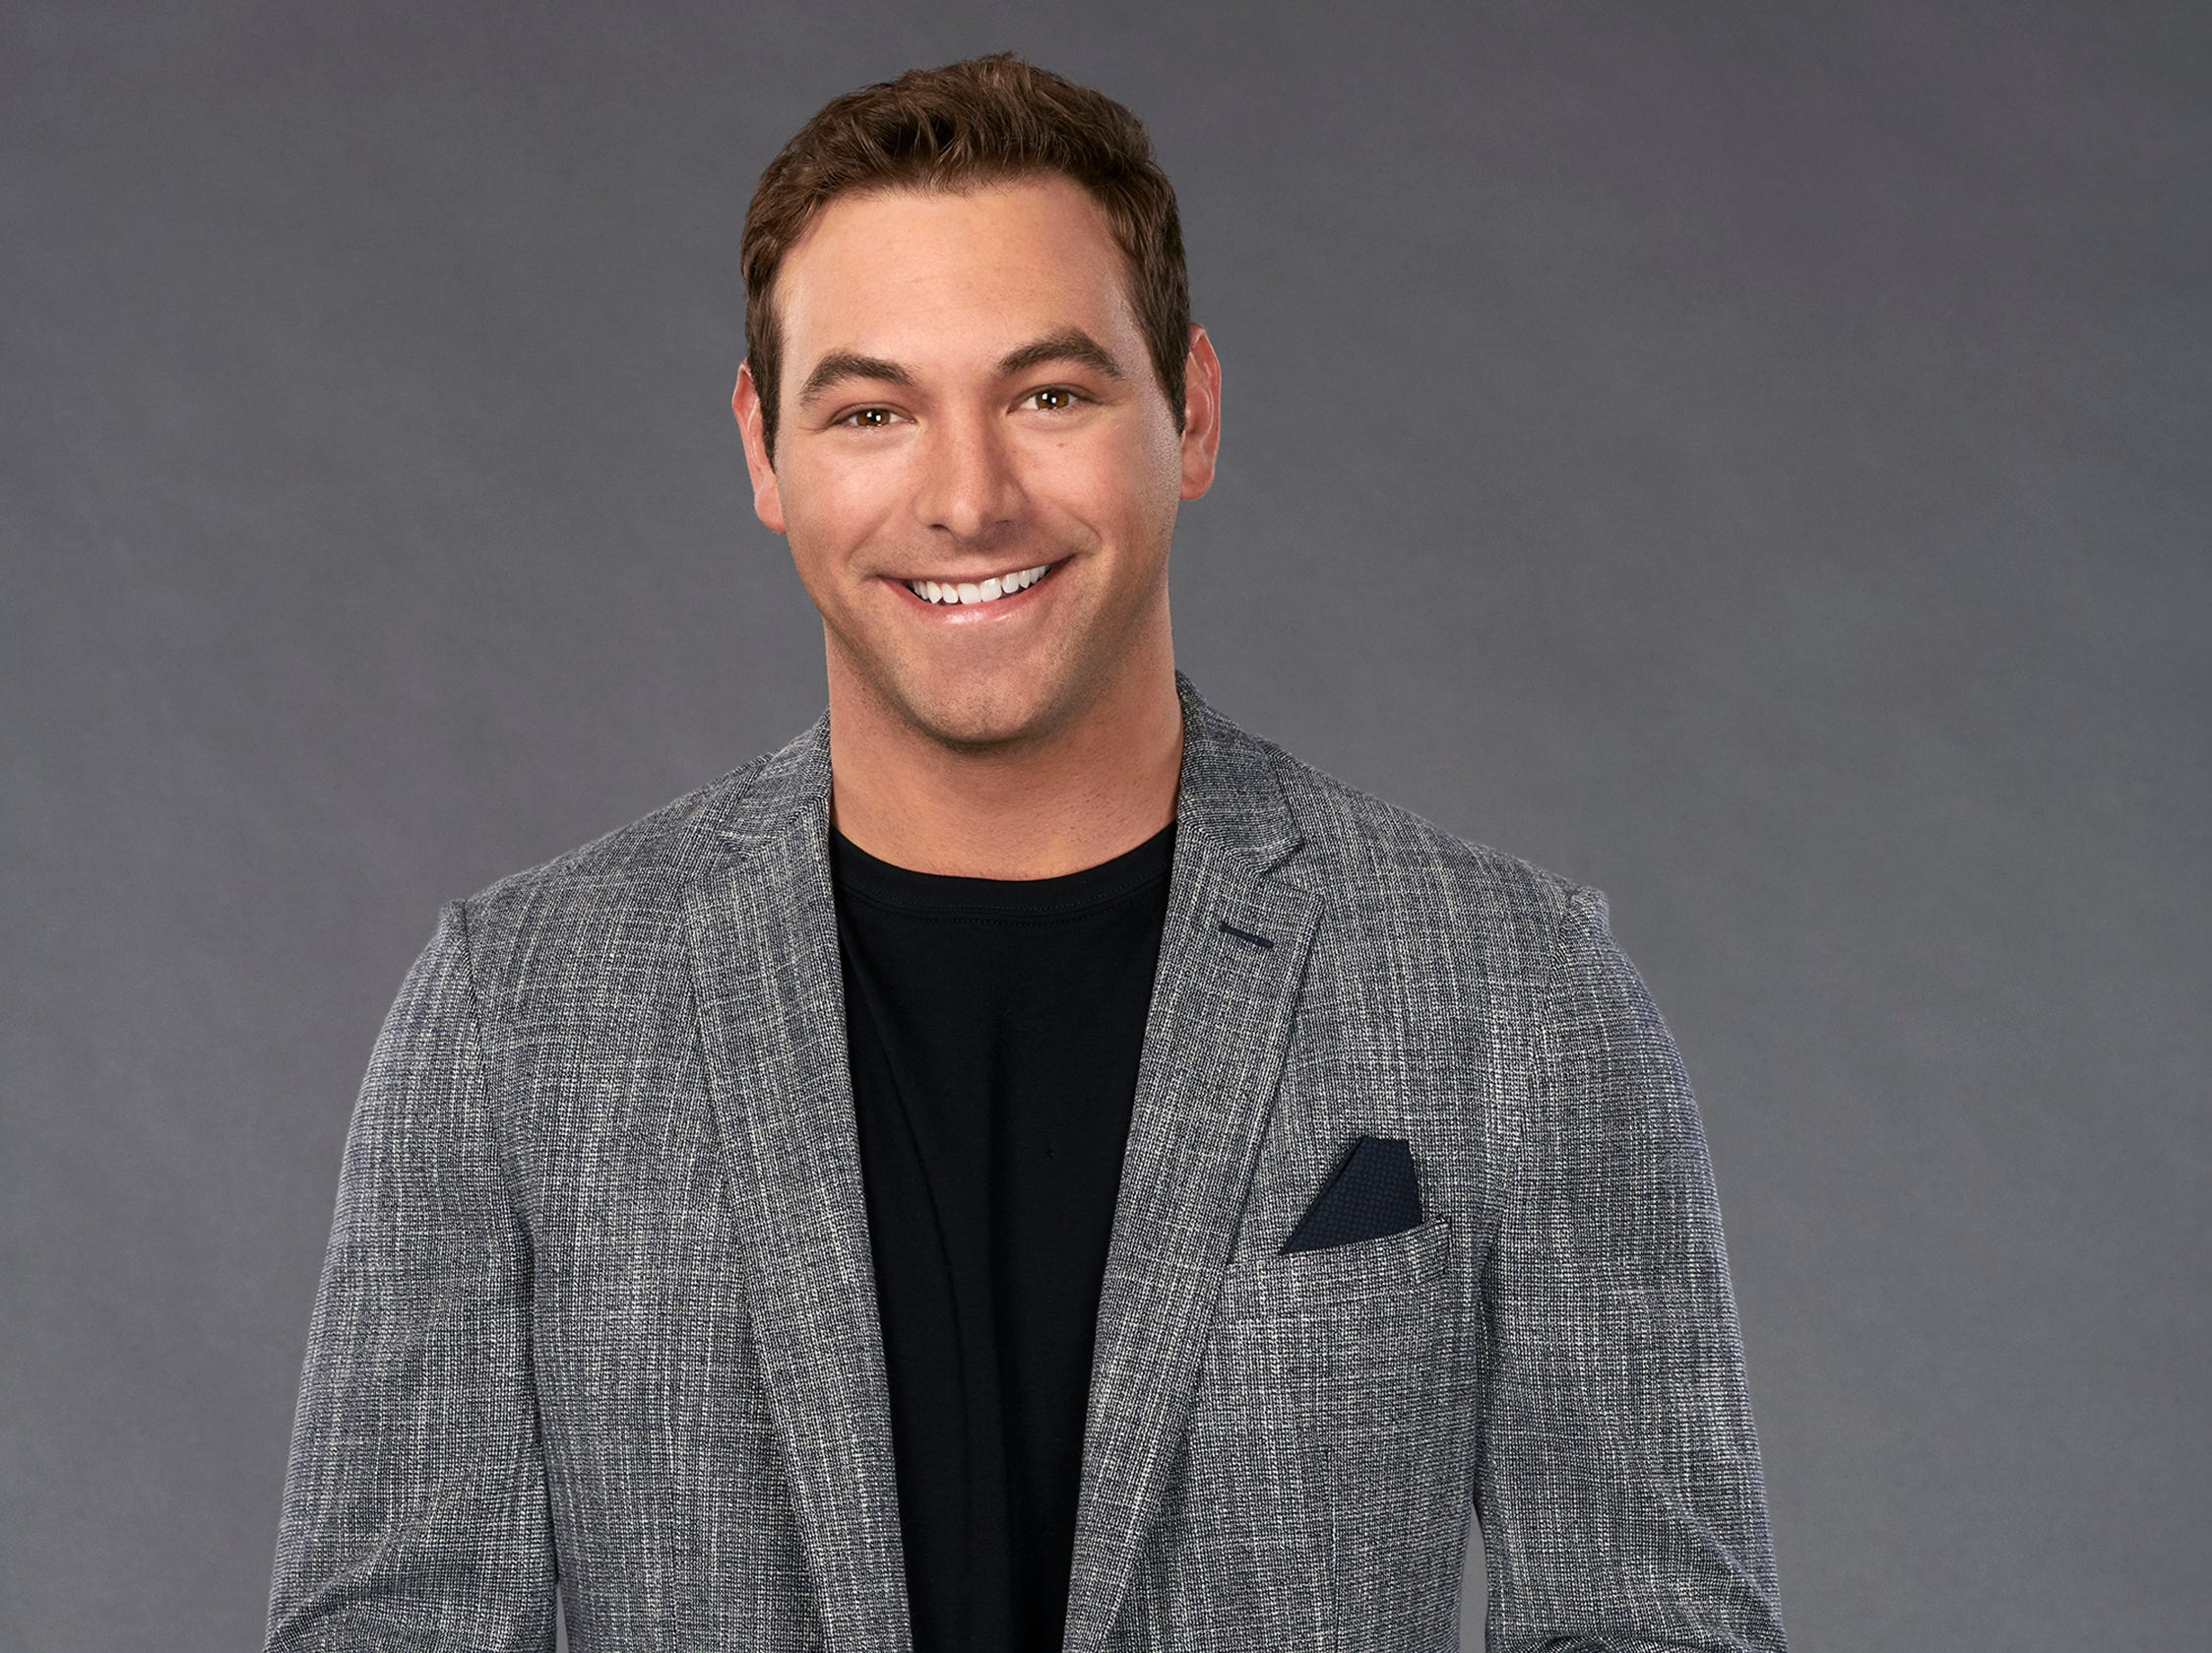 """The Bachelorette"" Season 23 contestant:  Chasen, 27, Ann Arbor, Michigan, pilot"